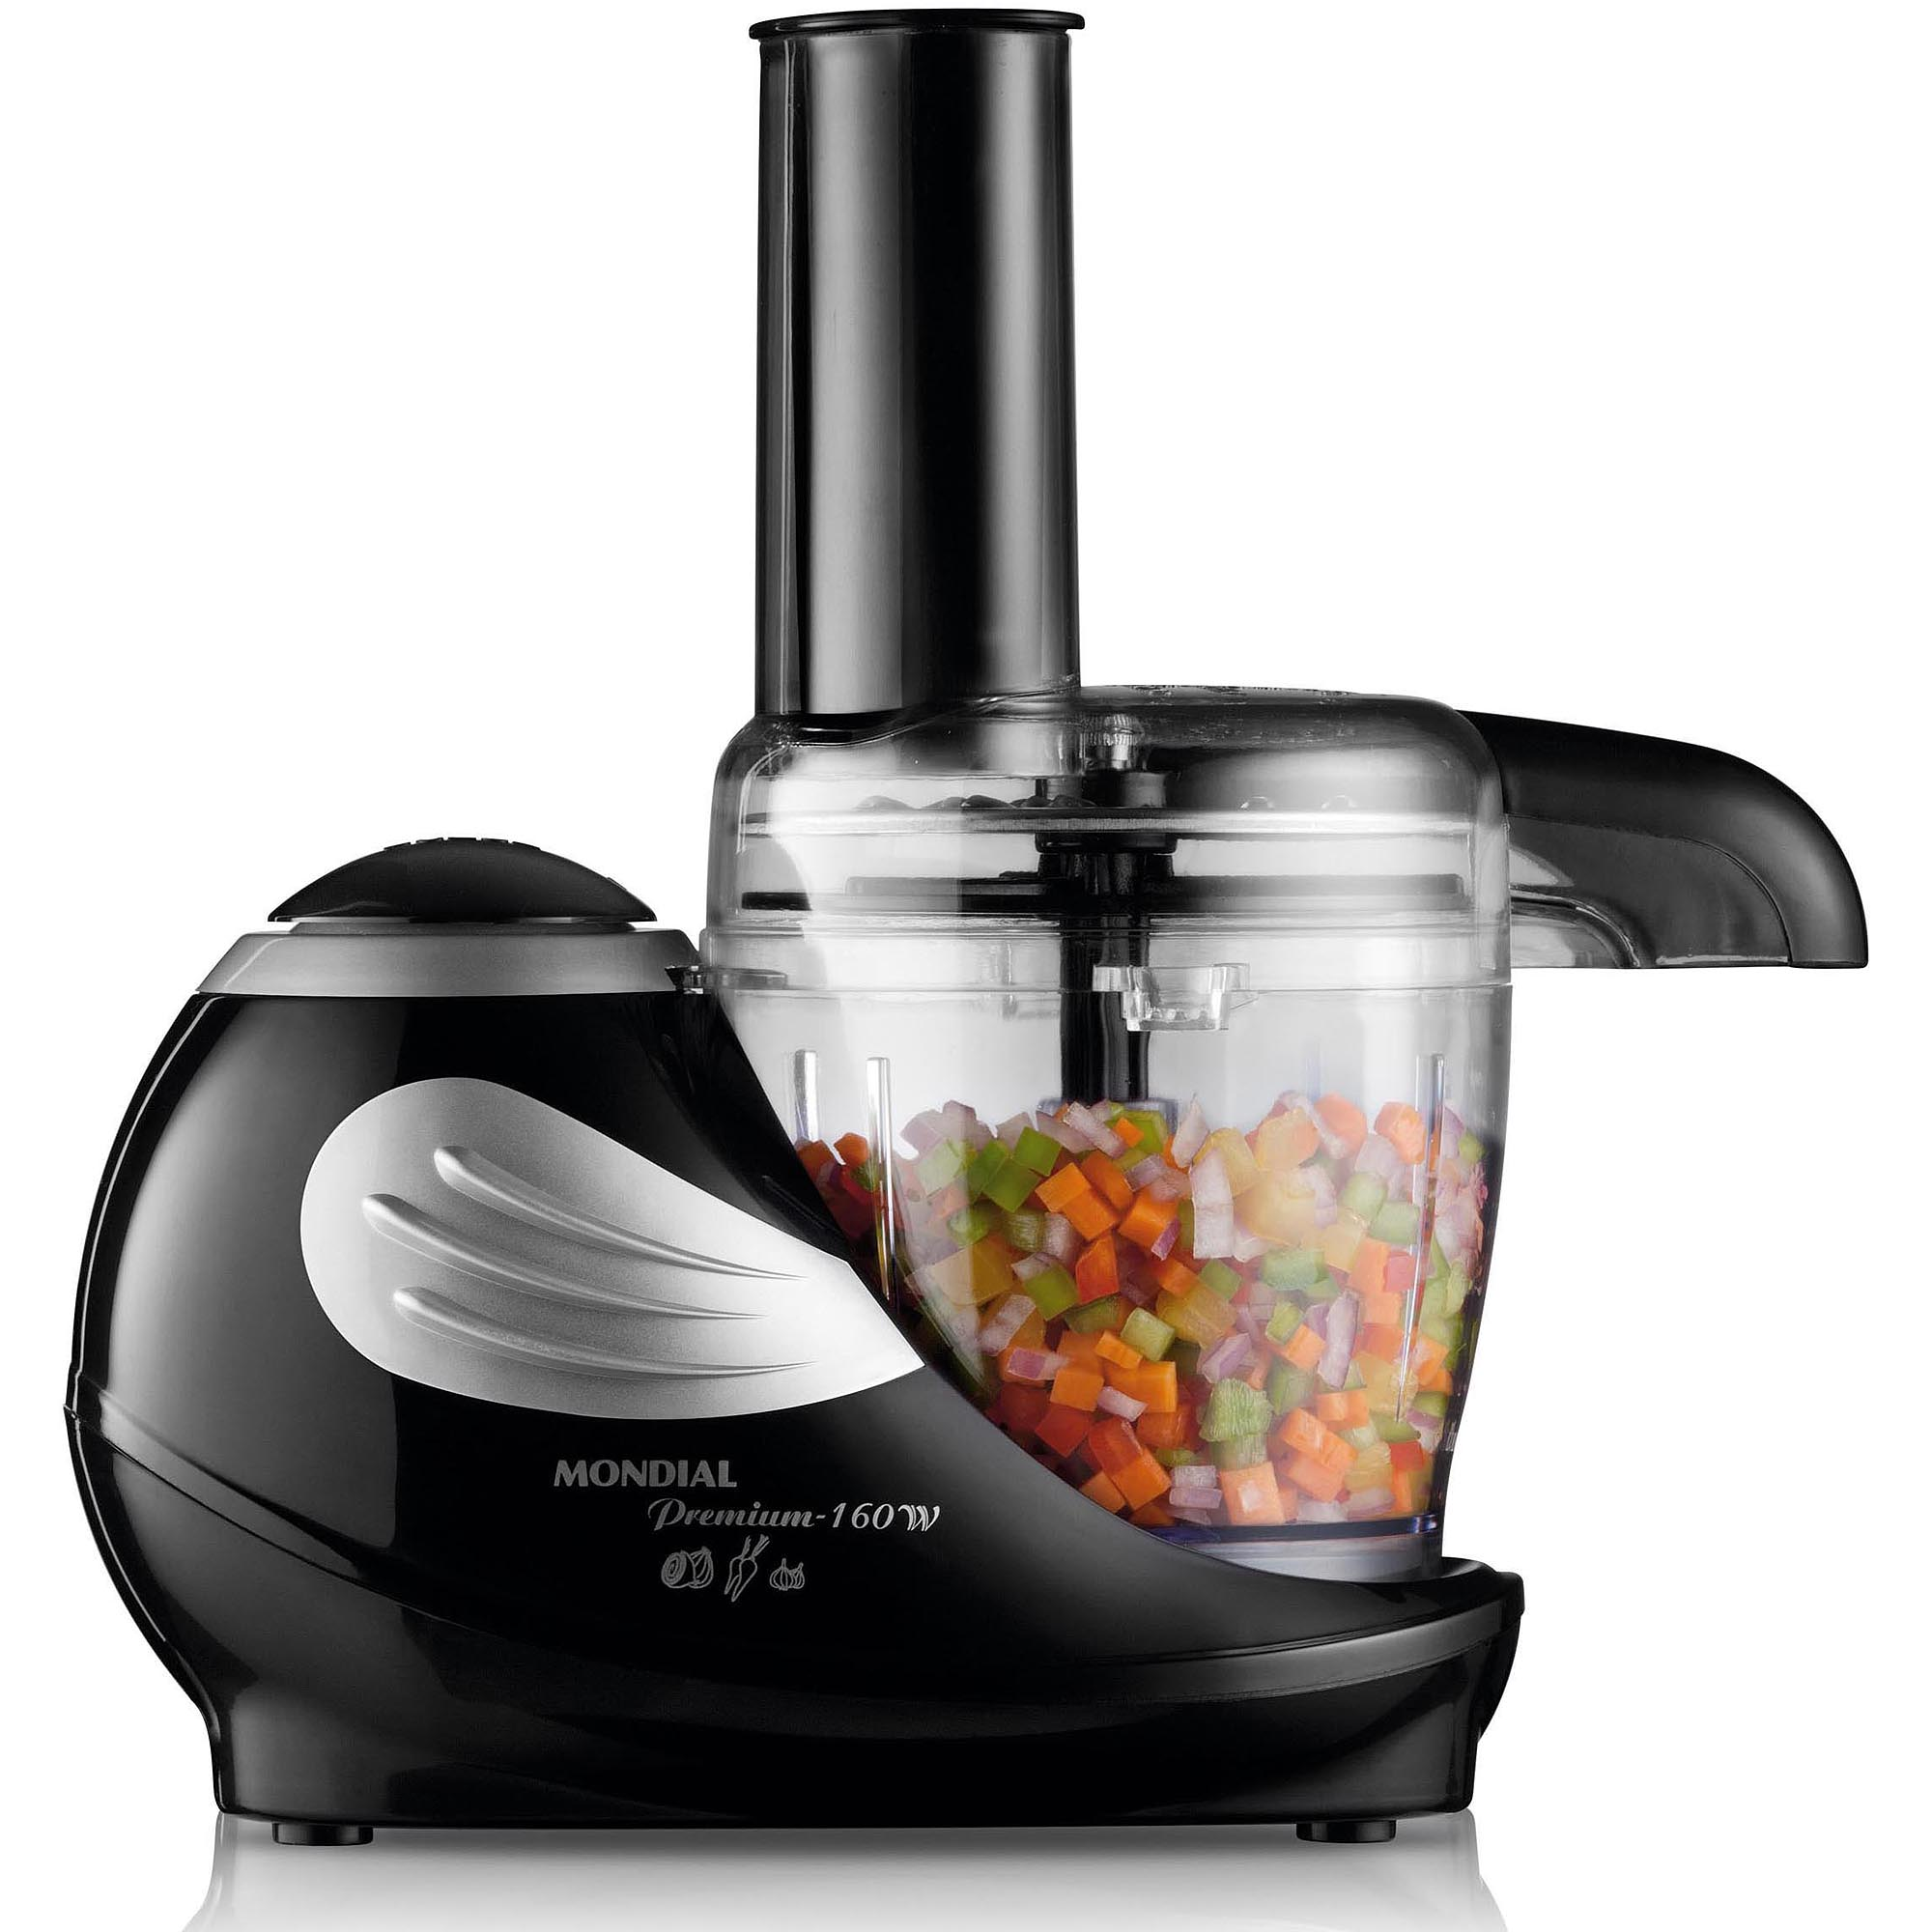 Mondial MP-10 1.5-Cup Food Chopper Processor with Feeder Chute, Black